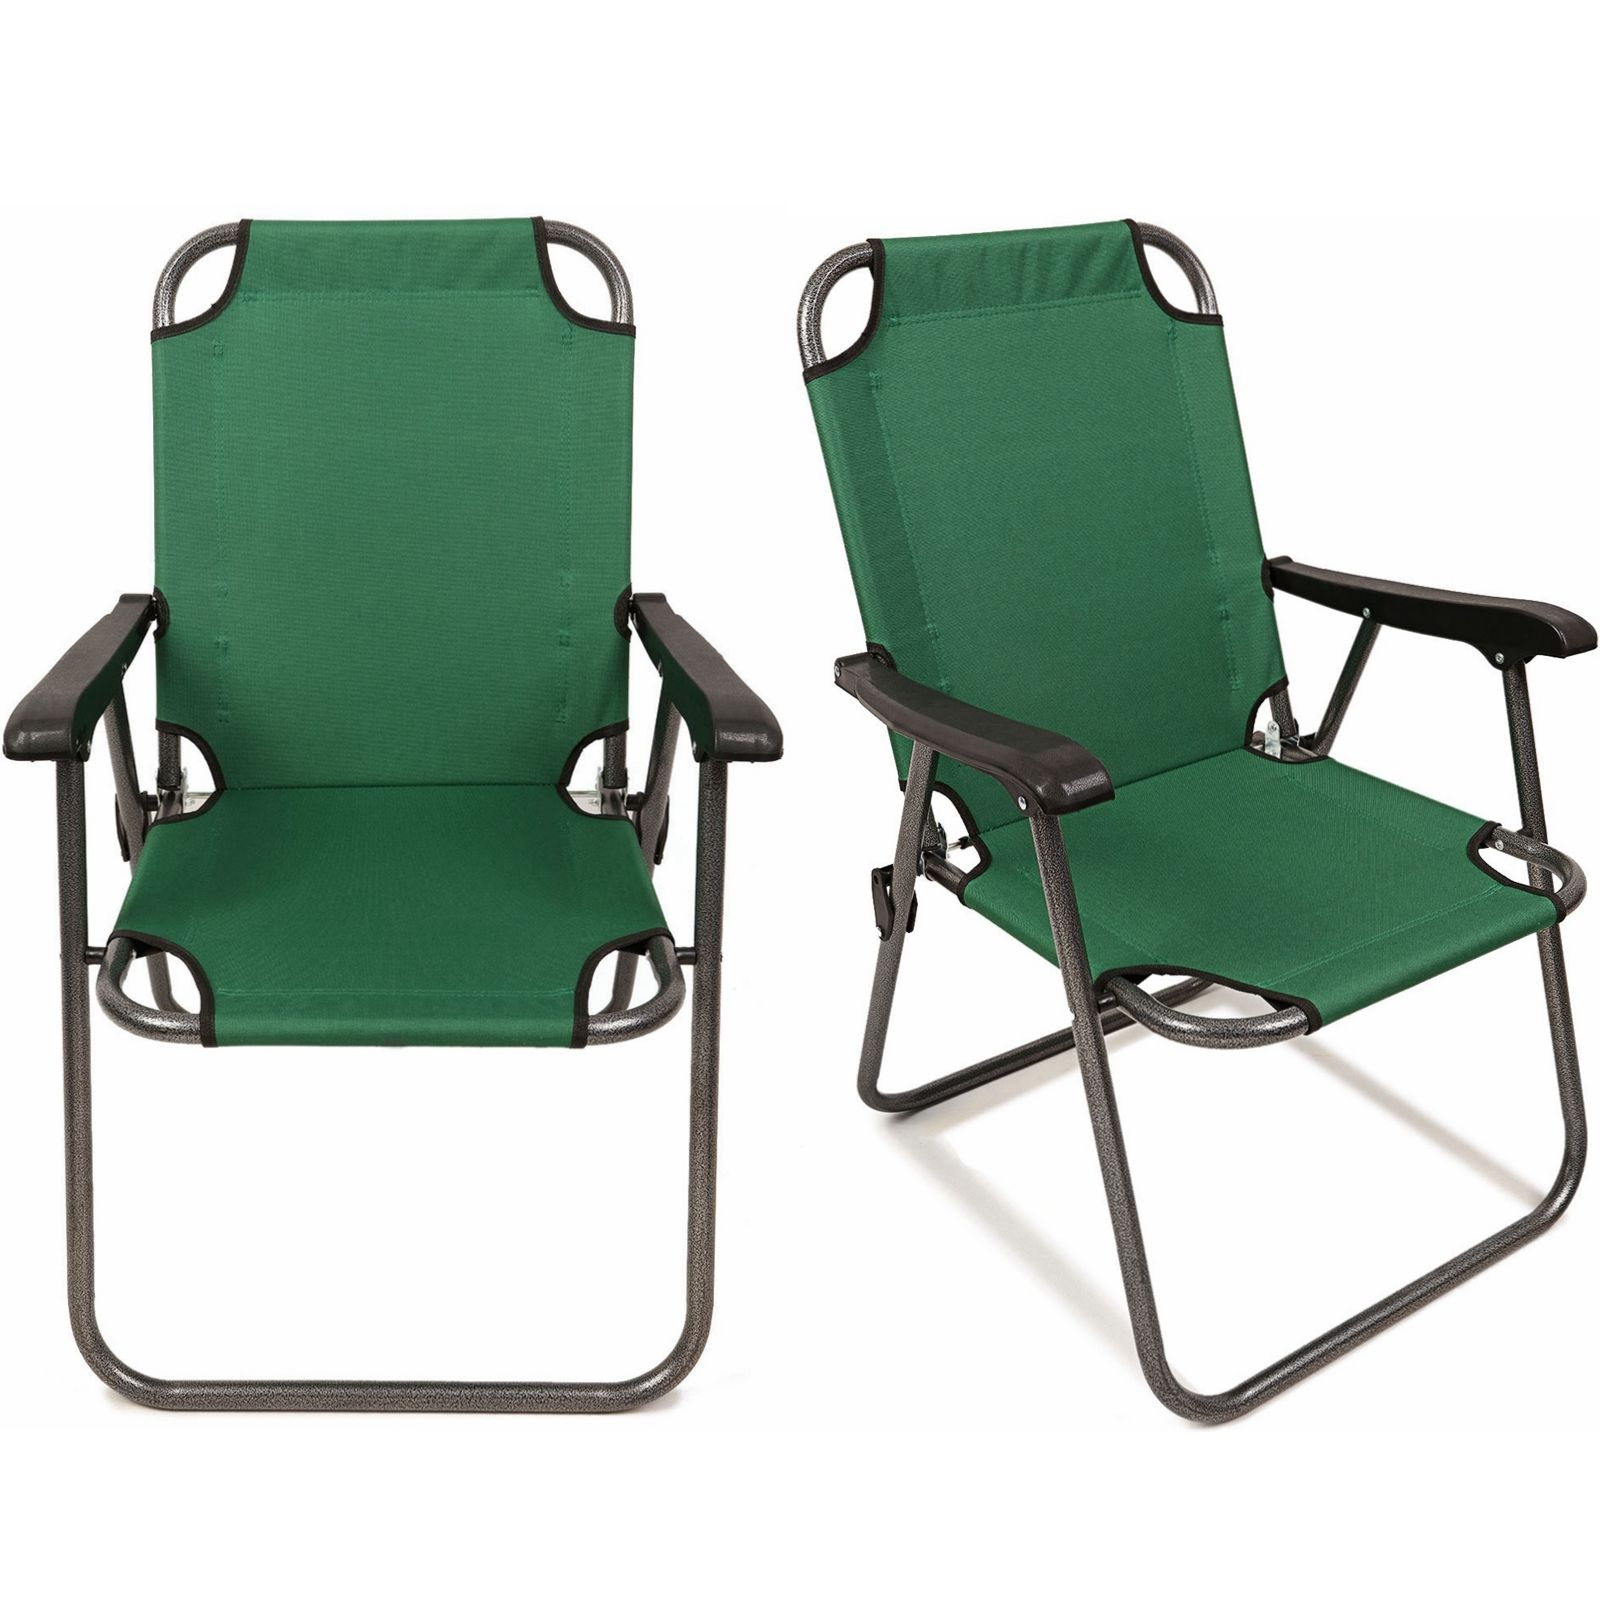 Magshion Deluxe Lightweight Beach Chair Outdoor Camping Hiking With Armrest Chair Set of 2Green